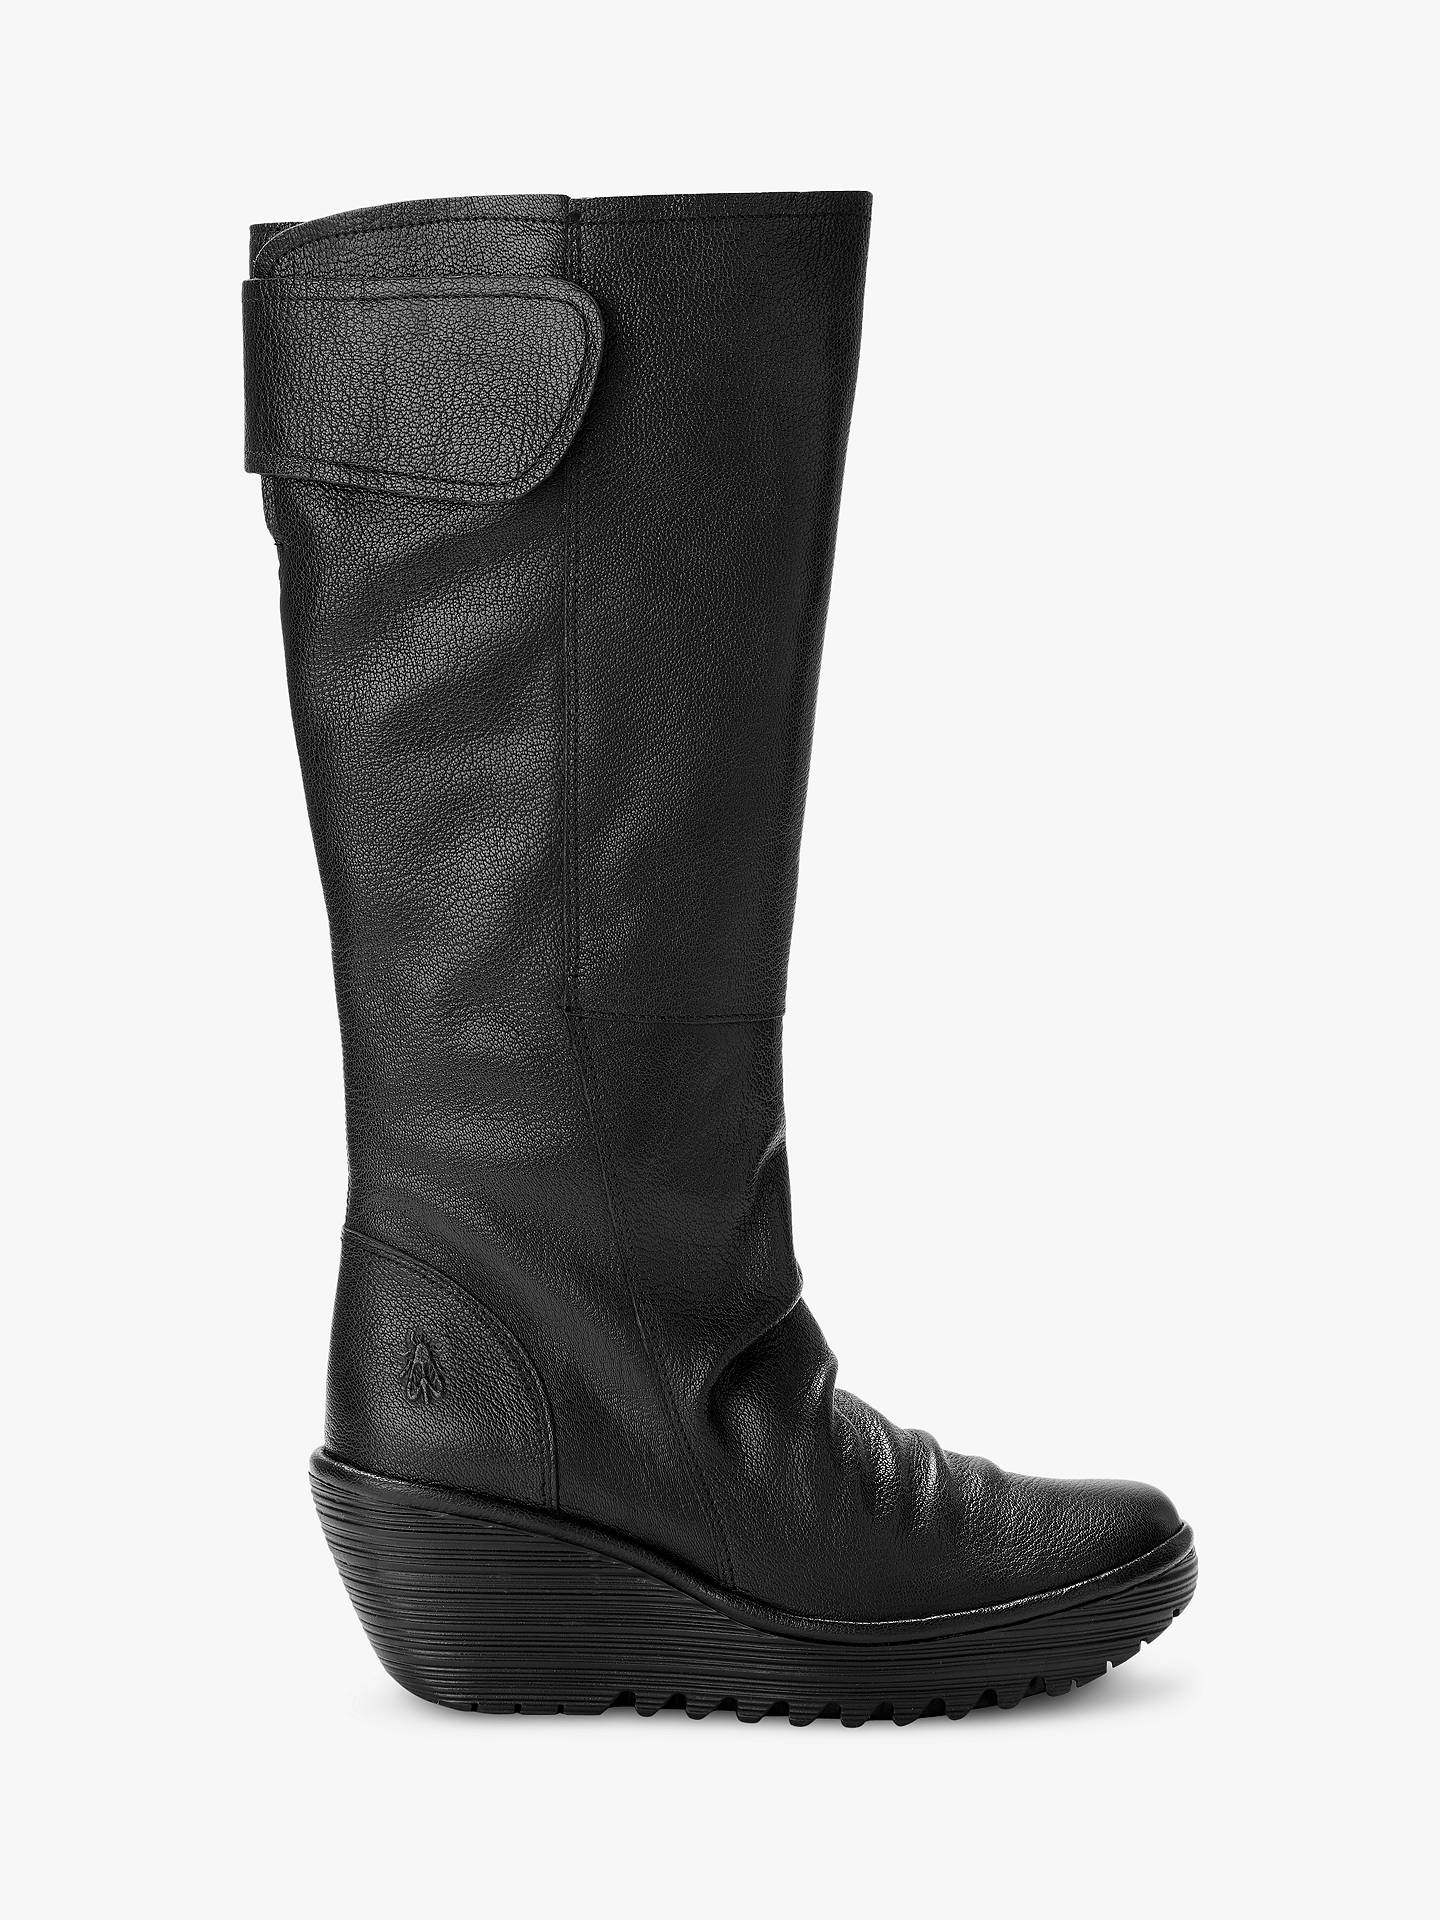 71fdfc1171c Women s Shoes Fly London Yulo Black Womens Leather Knee High Wedge Boots  Boots